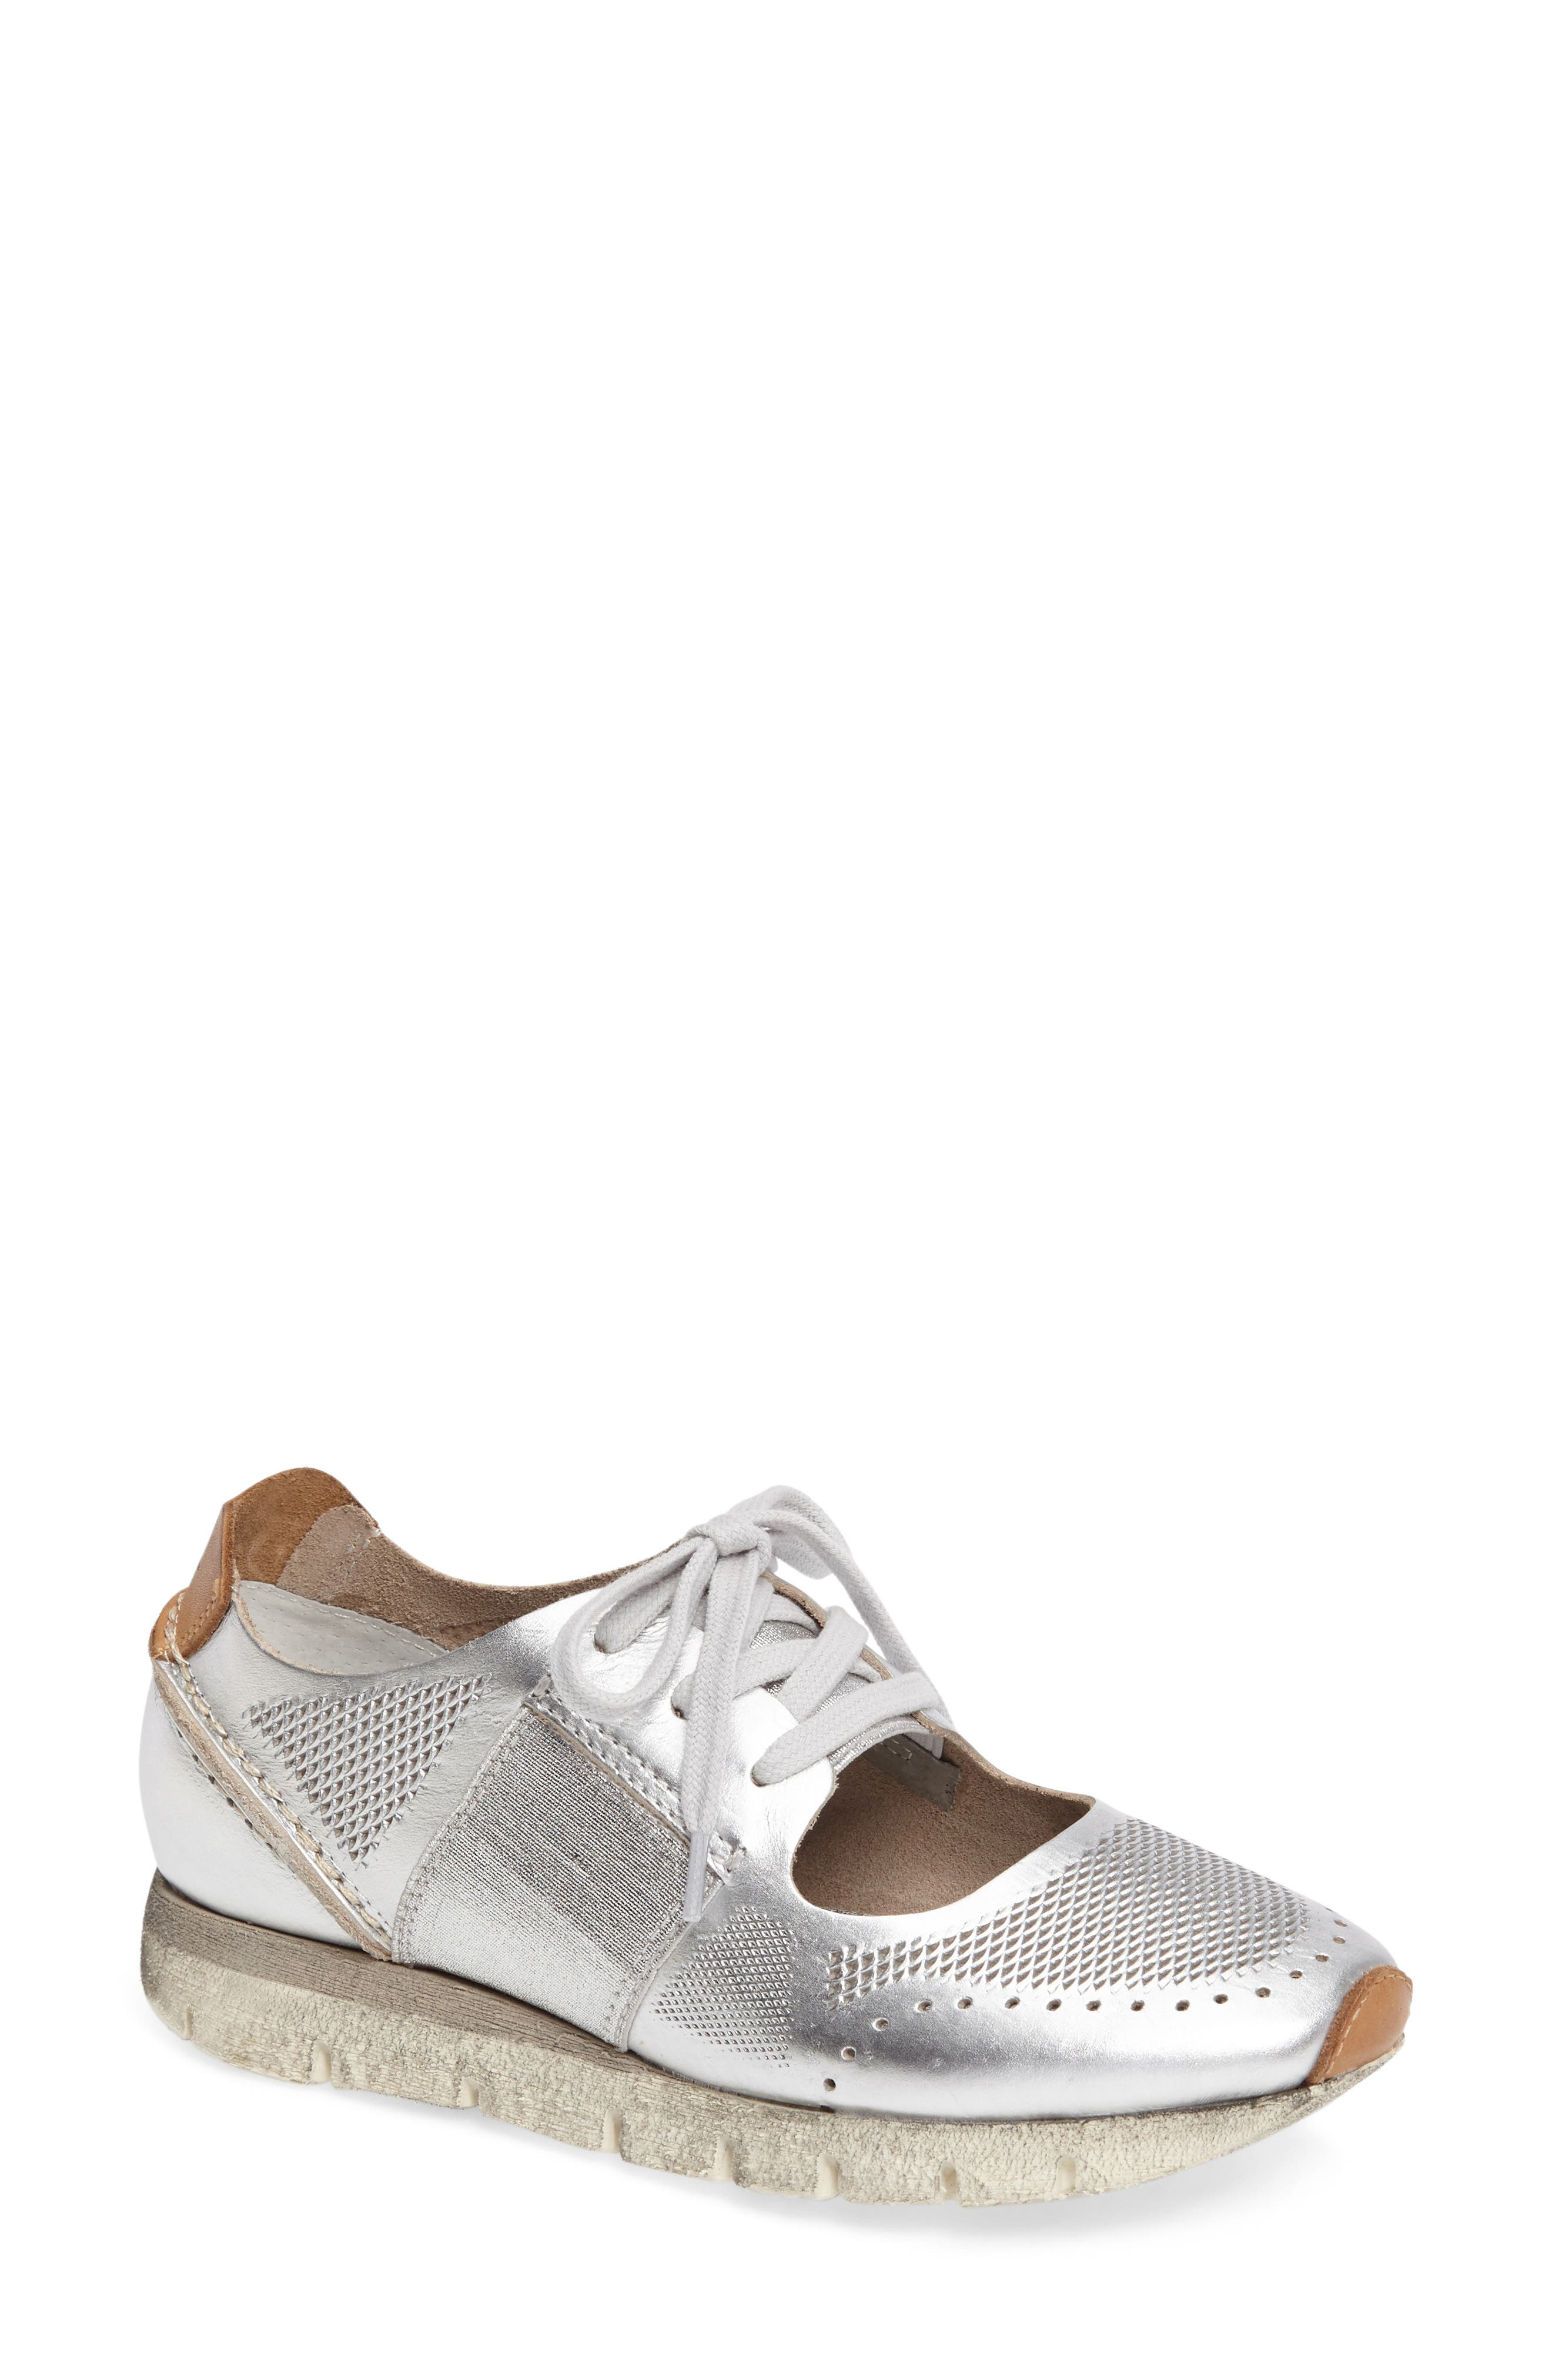 Star Dust Cutout Sneaker,                             Main thumbnail 1, color,                             Silver Leather